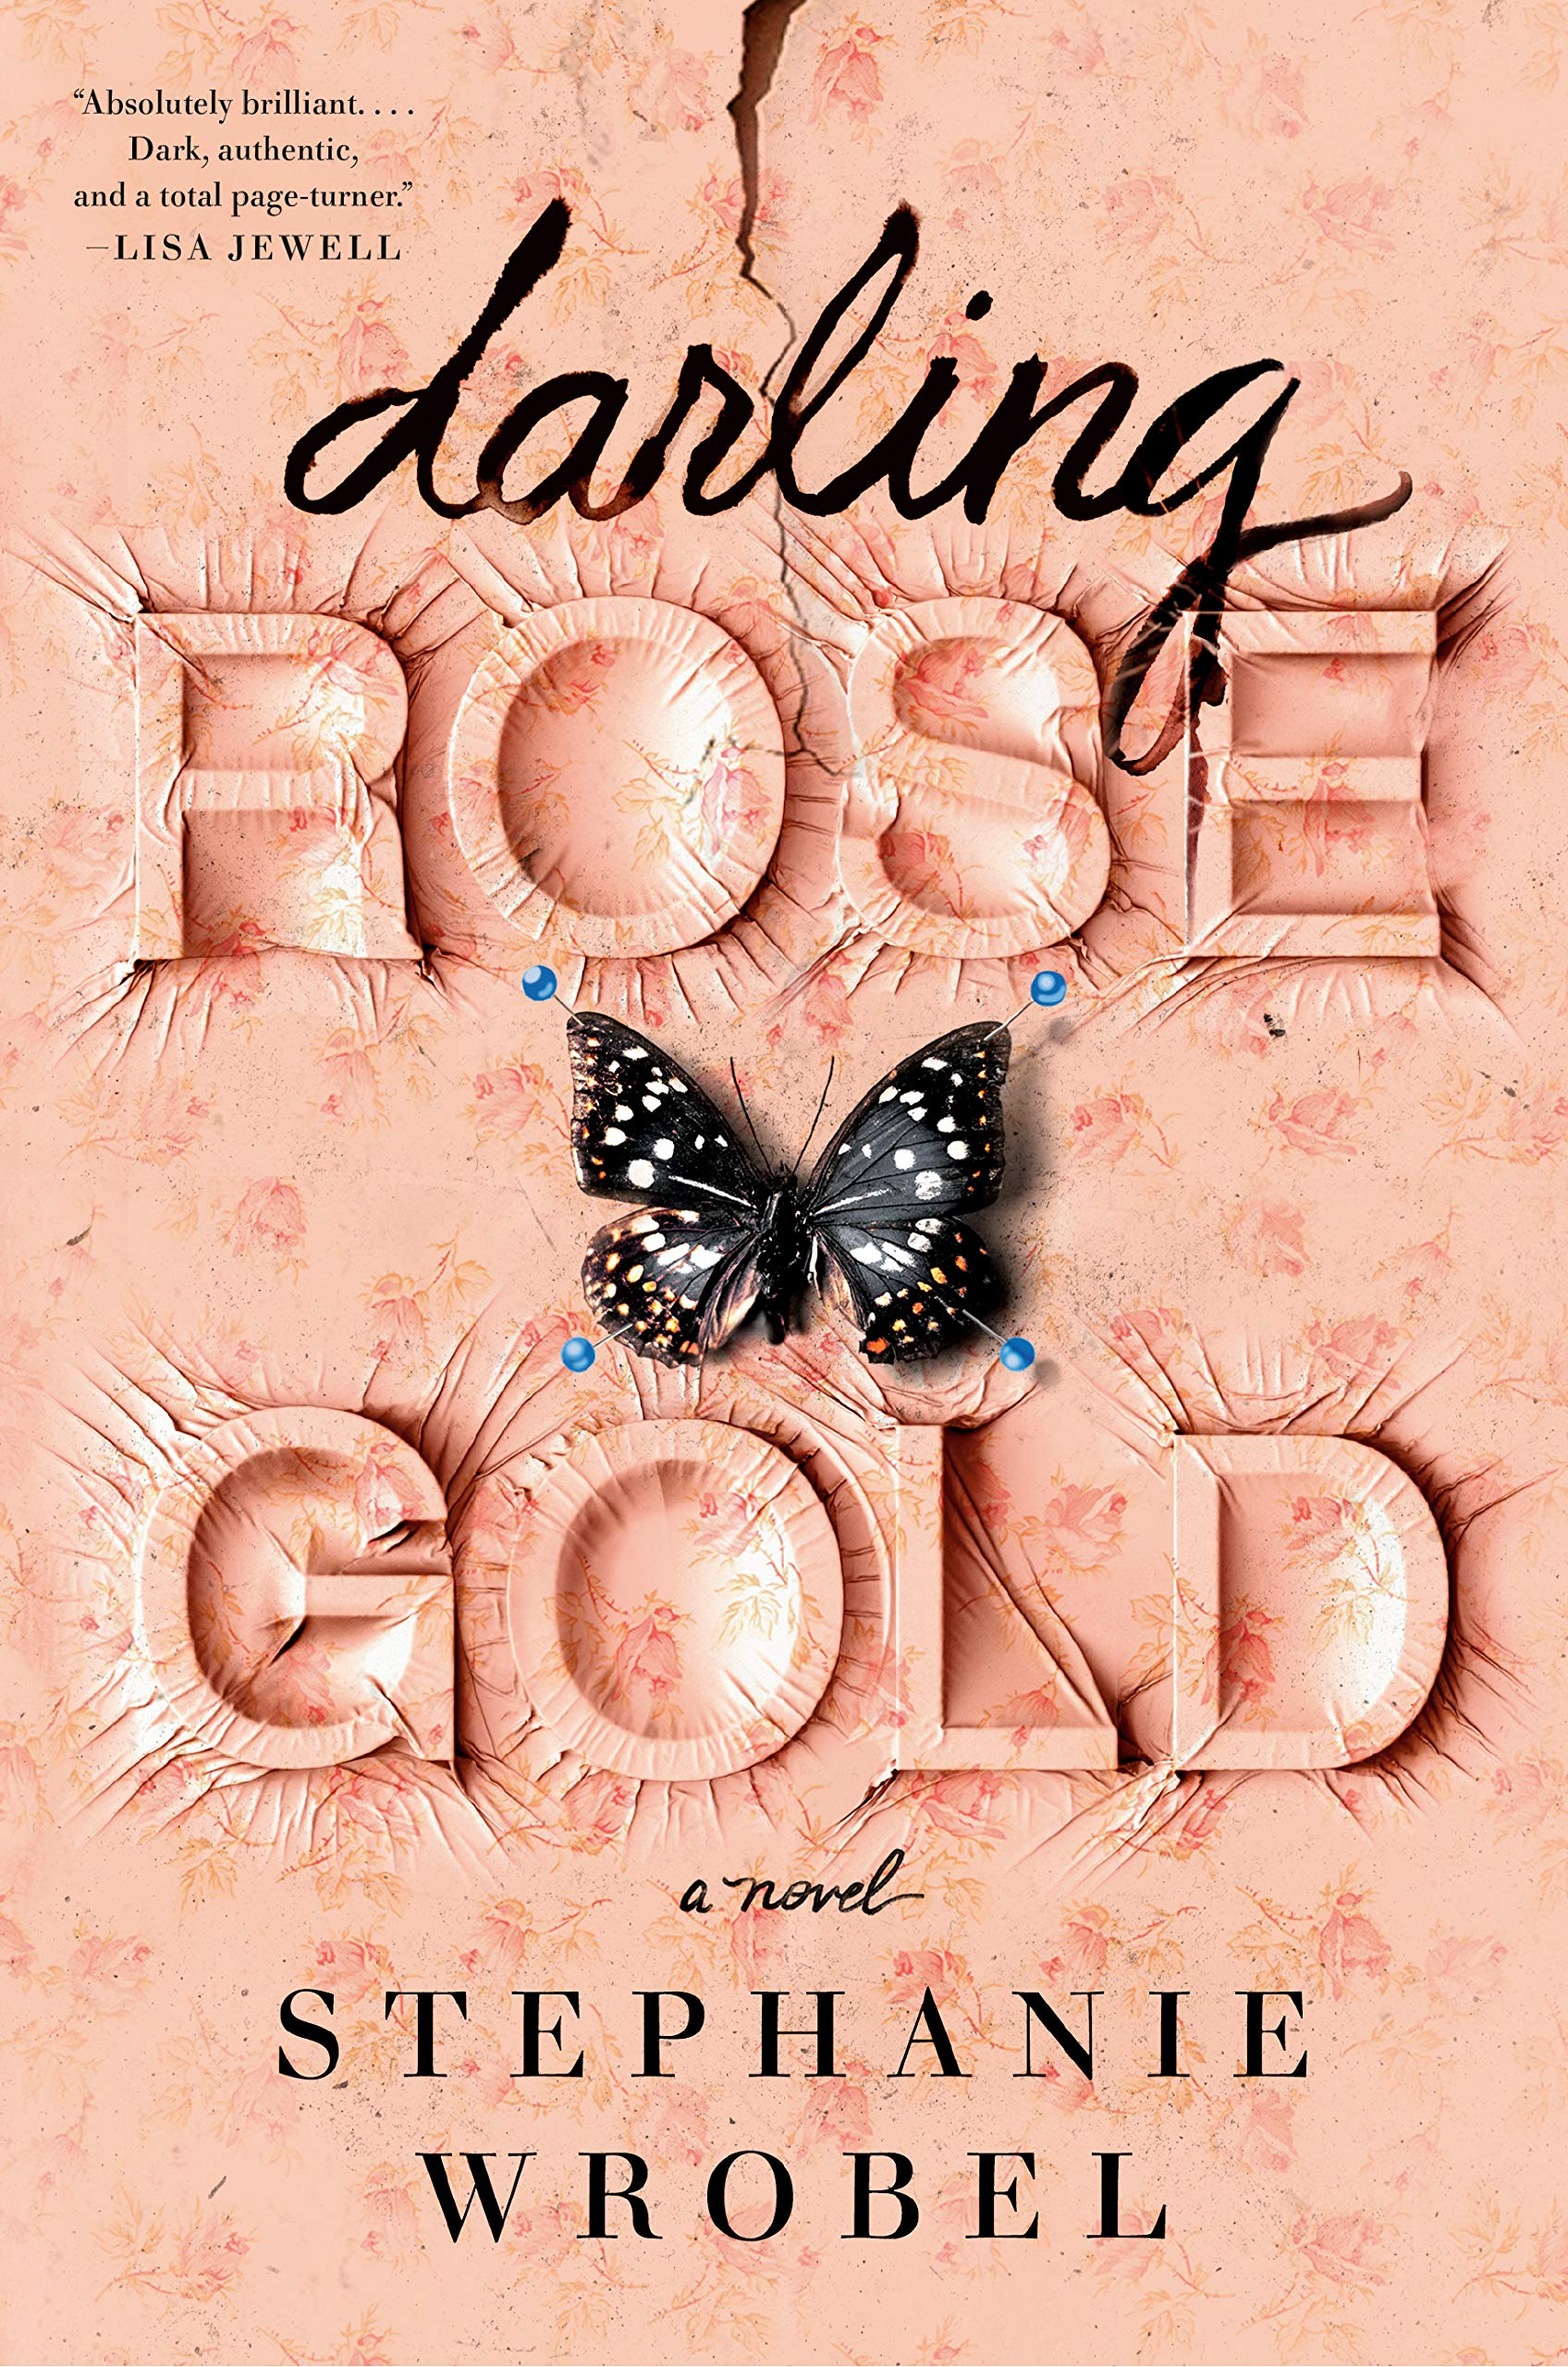 Buy Darling Rose Gold Book Online at Low Prices in India | Darling Rose Gold  Reviews & Ratings - Amazon.in